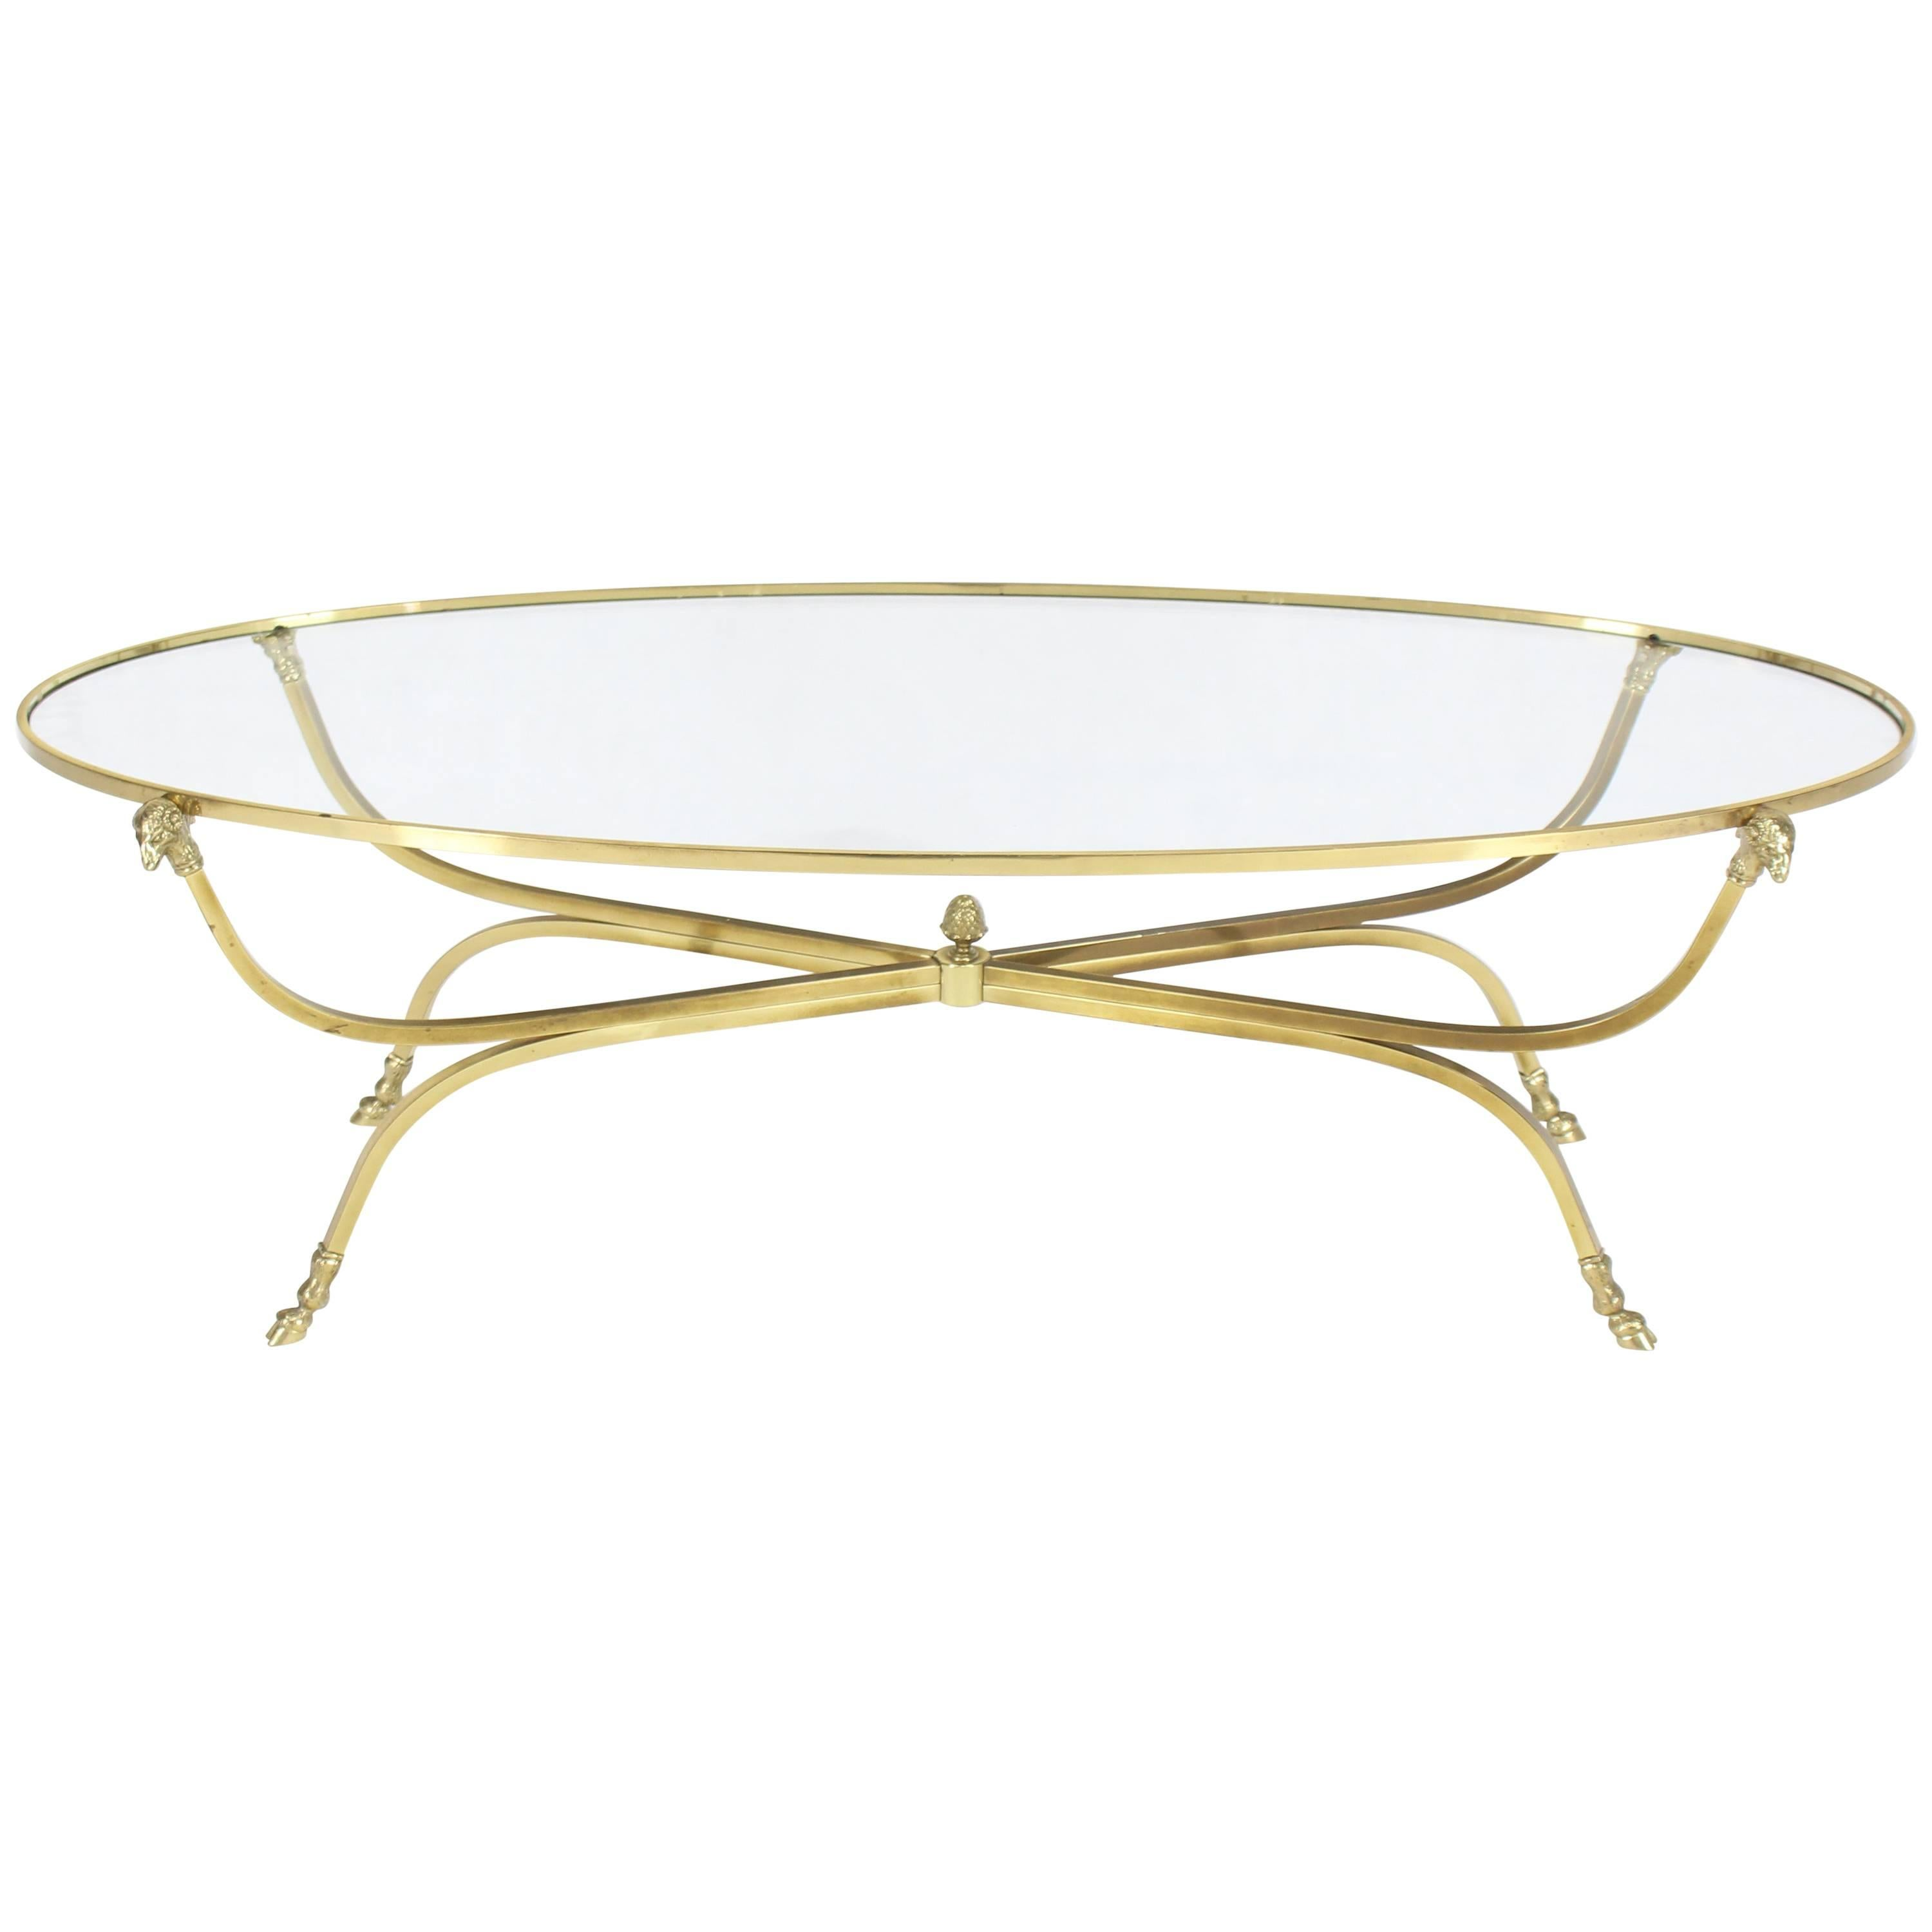 Gentil Large Oval Polished Brass Glass Top Coffee Table On Hoof Foot